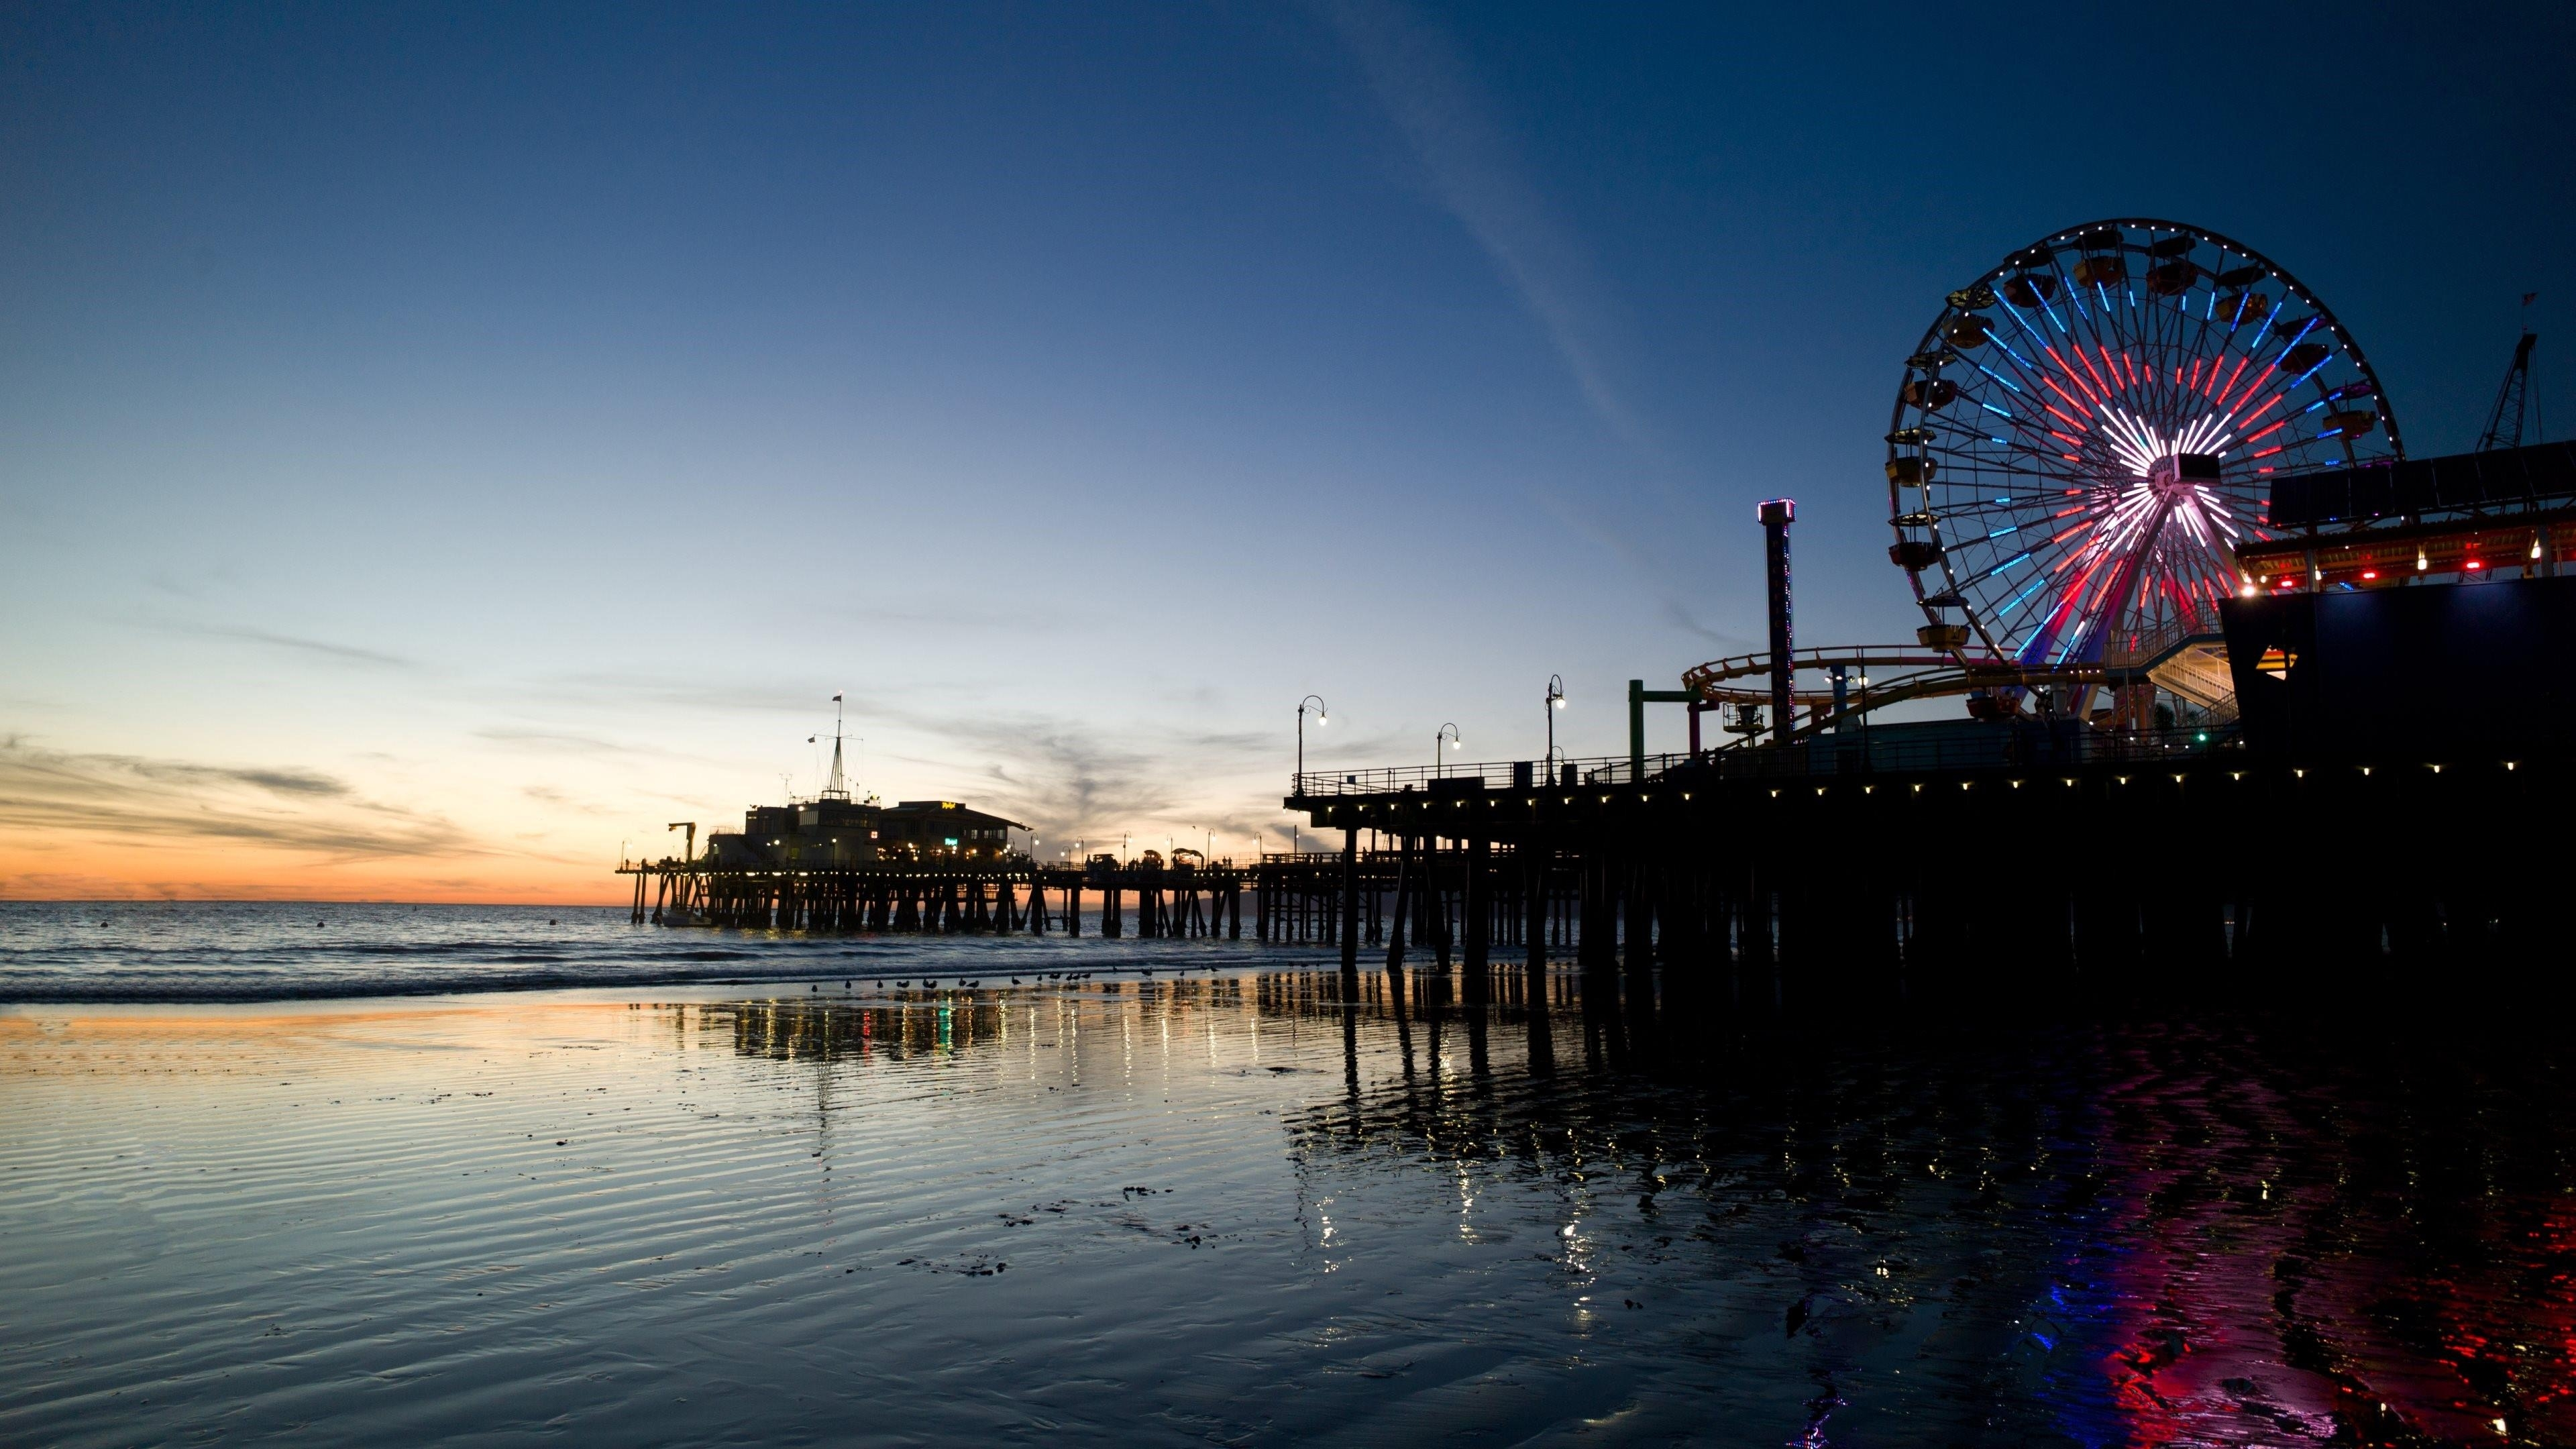 santa monica beach in los angeles, california wallpaper | wallpaper